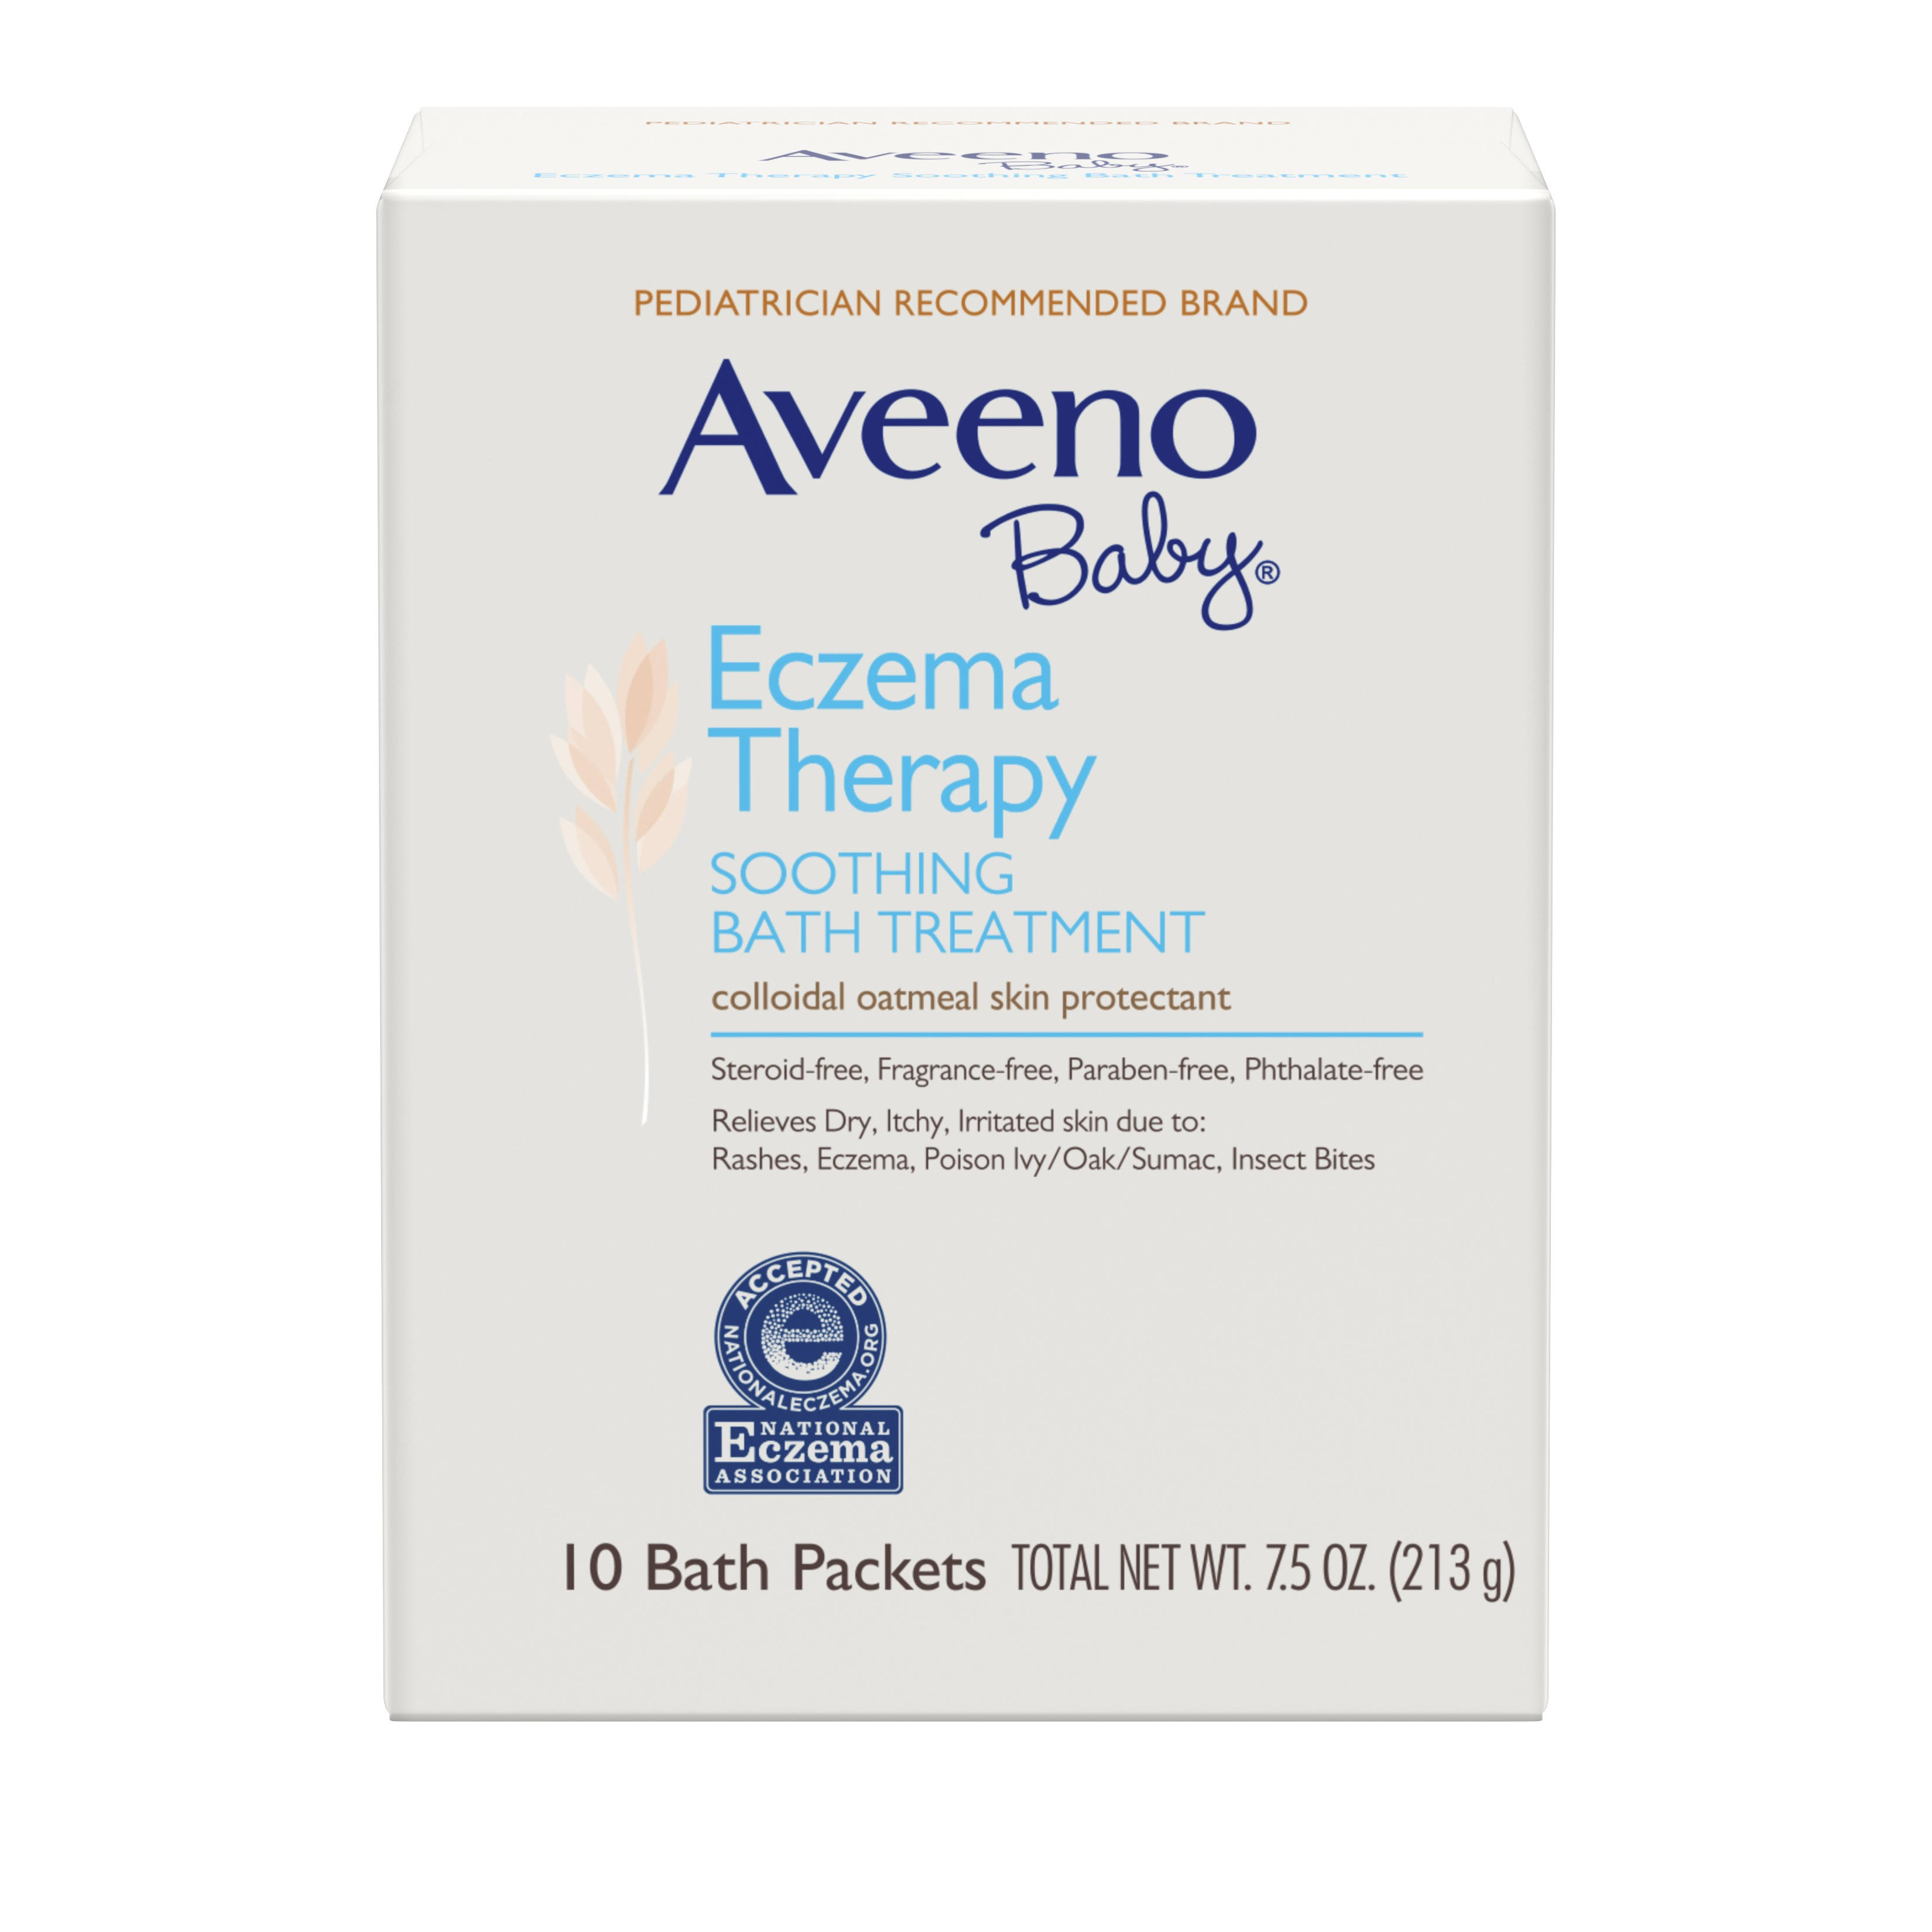 Aveeno Baby Eczema Therapy Soothing Bath Treatment with Natural Oatmeal - 10 Packets